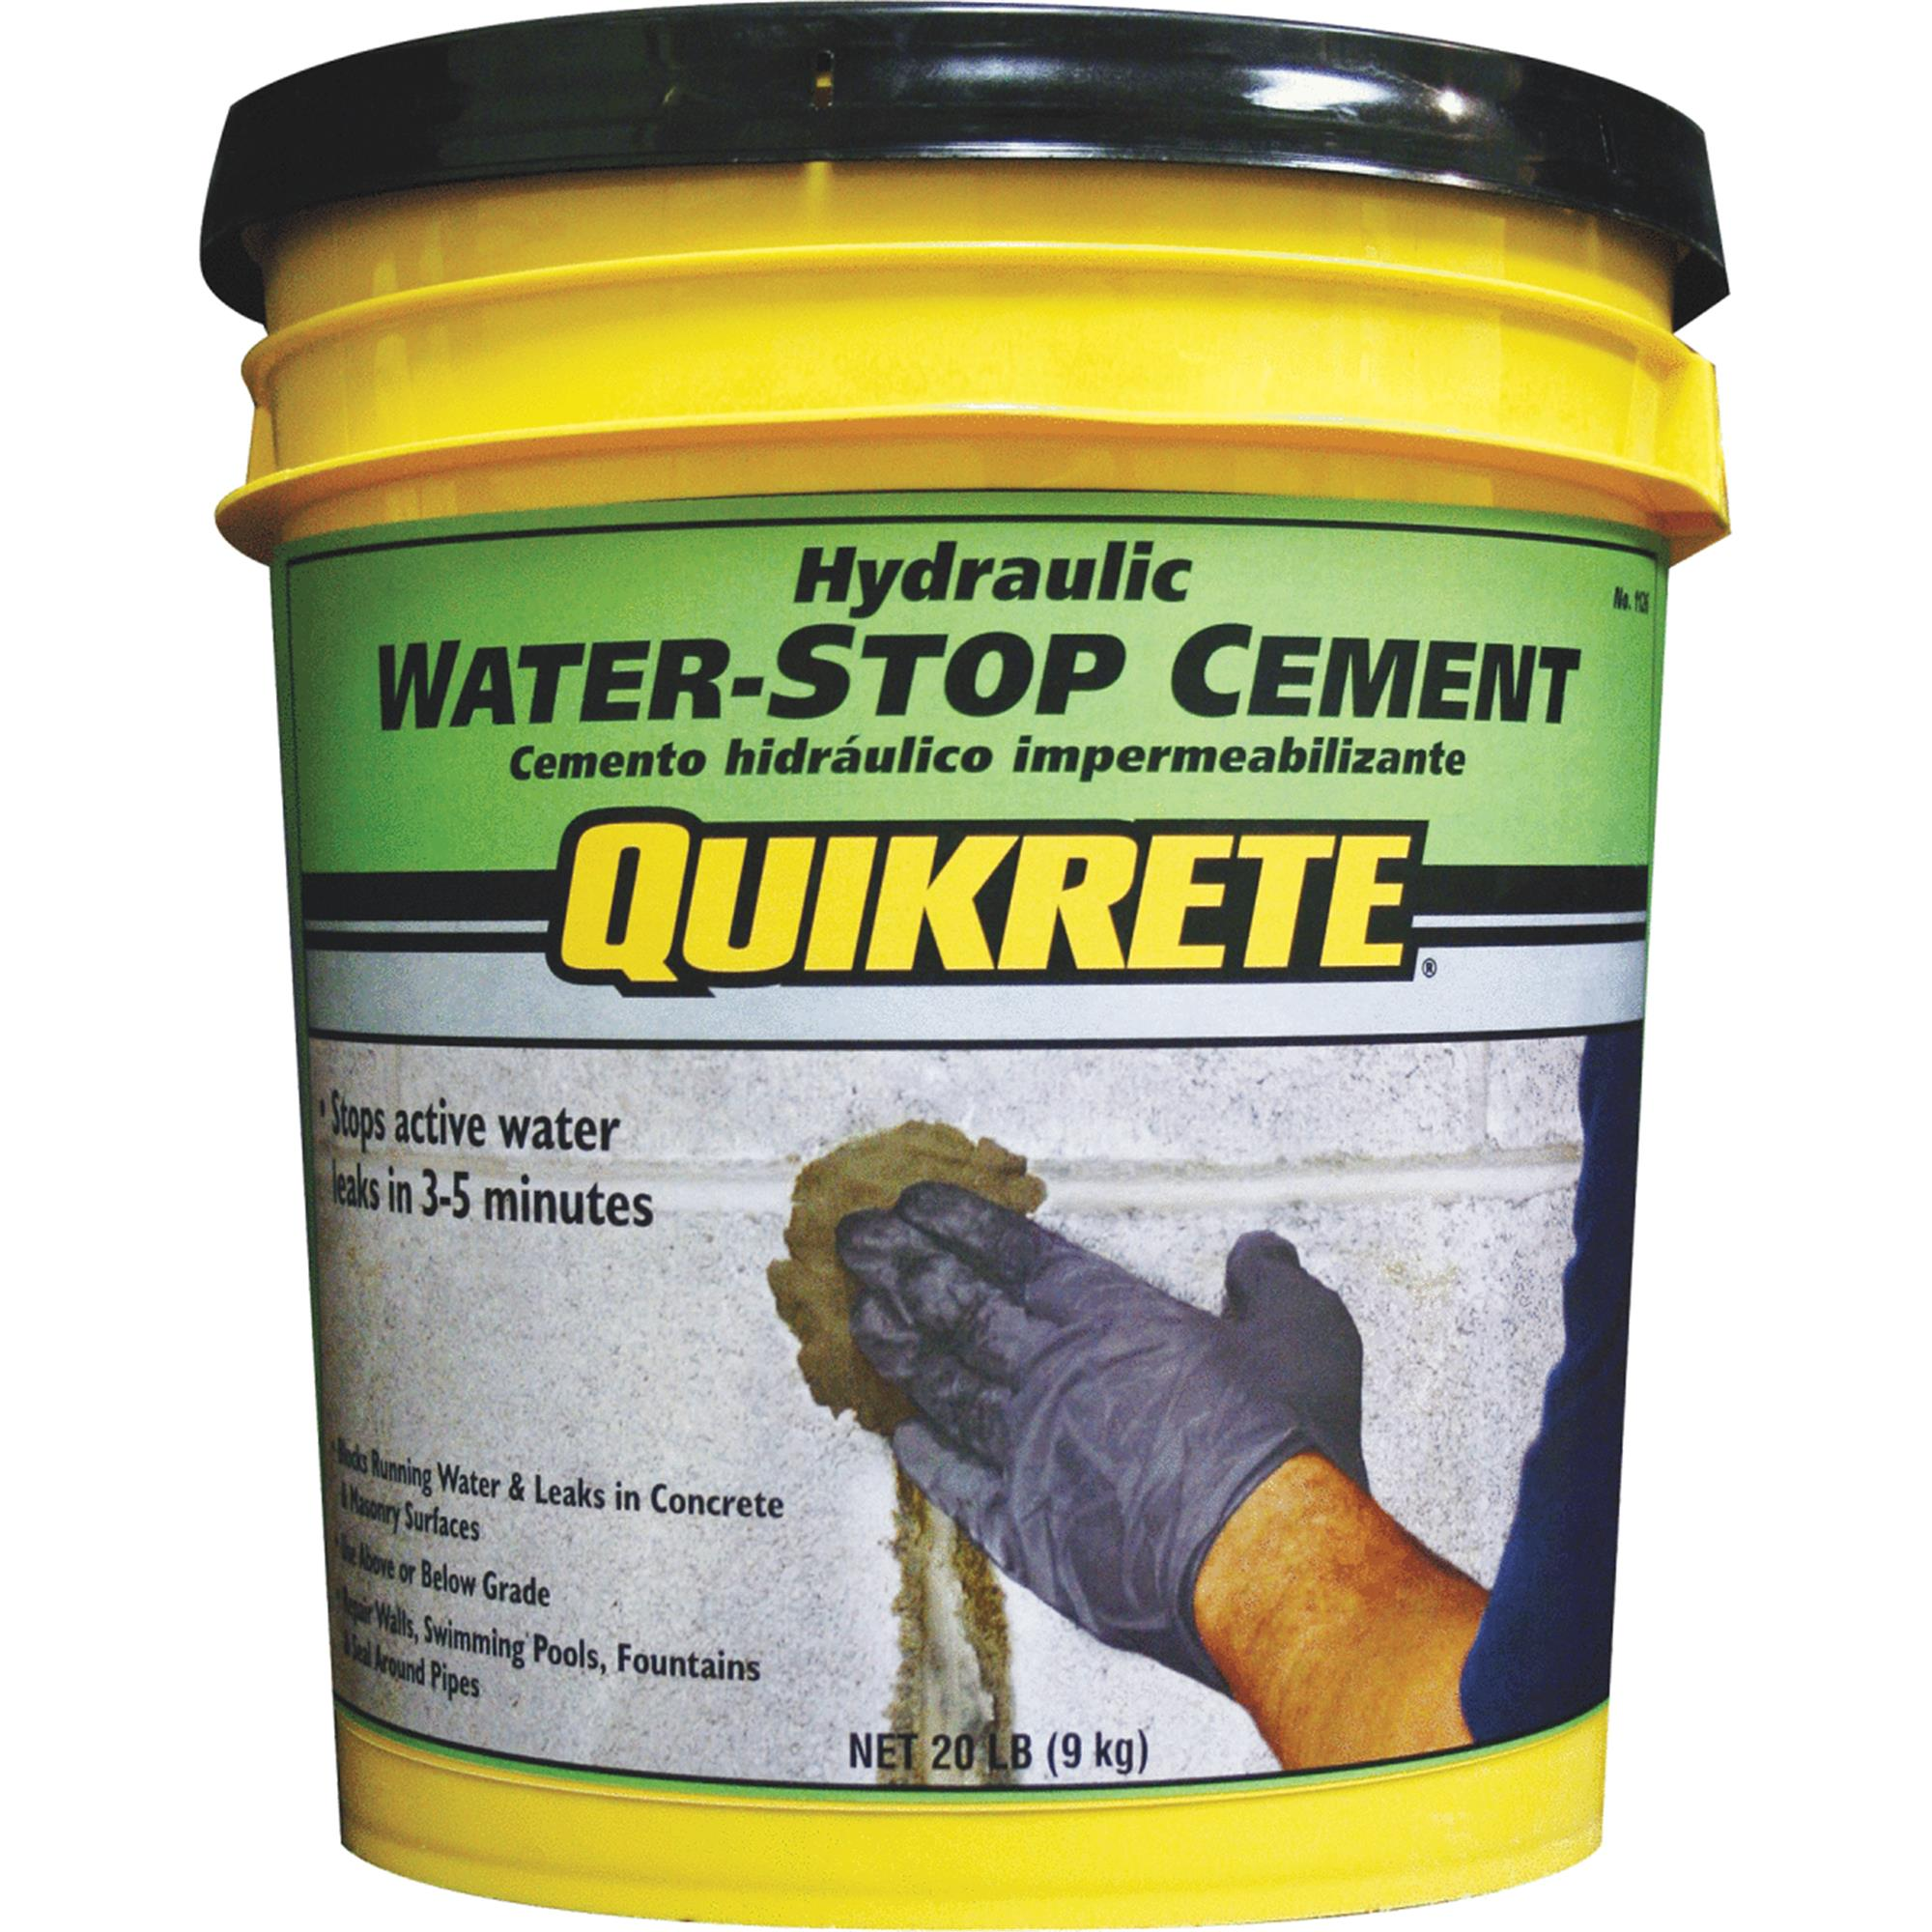 Quikrete Hydraulic Water-Stop Cement